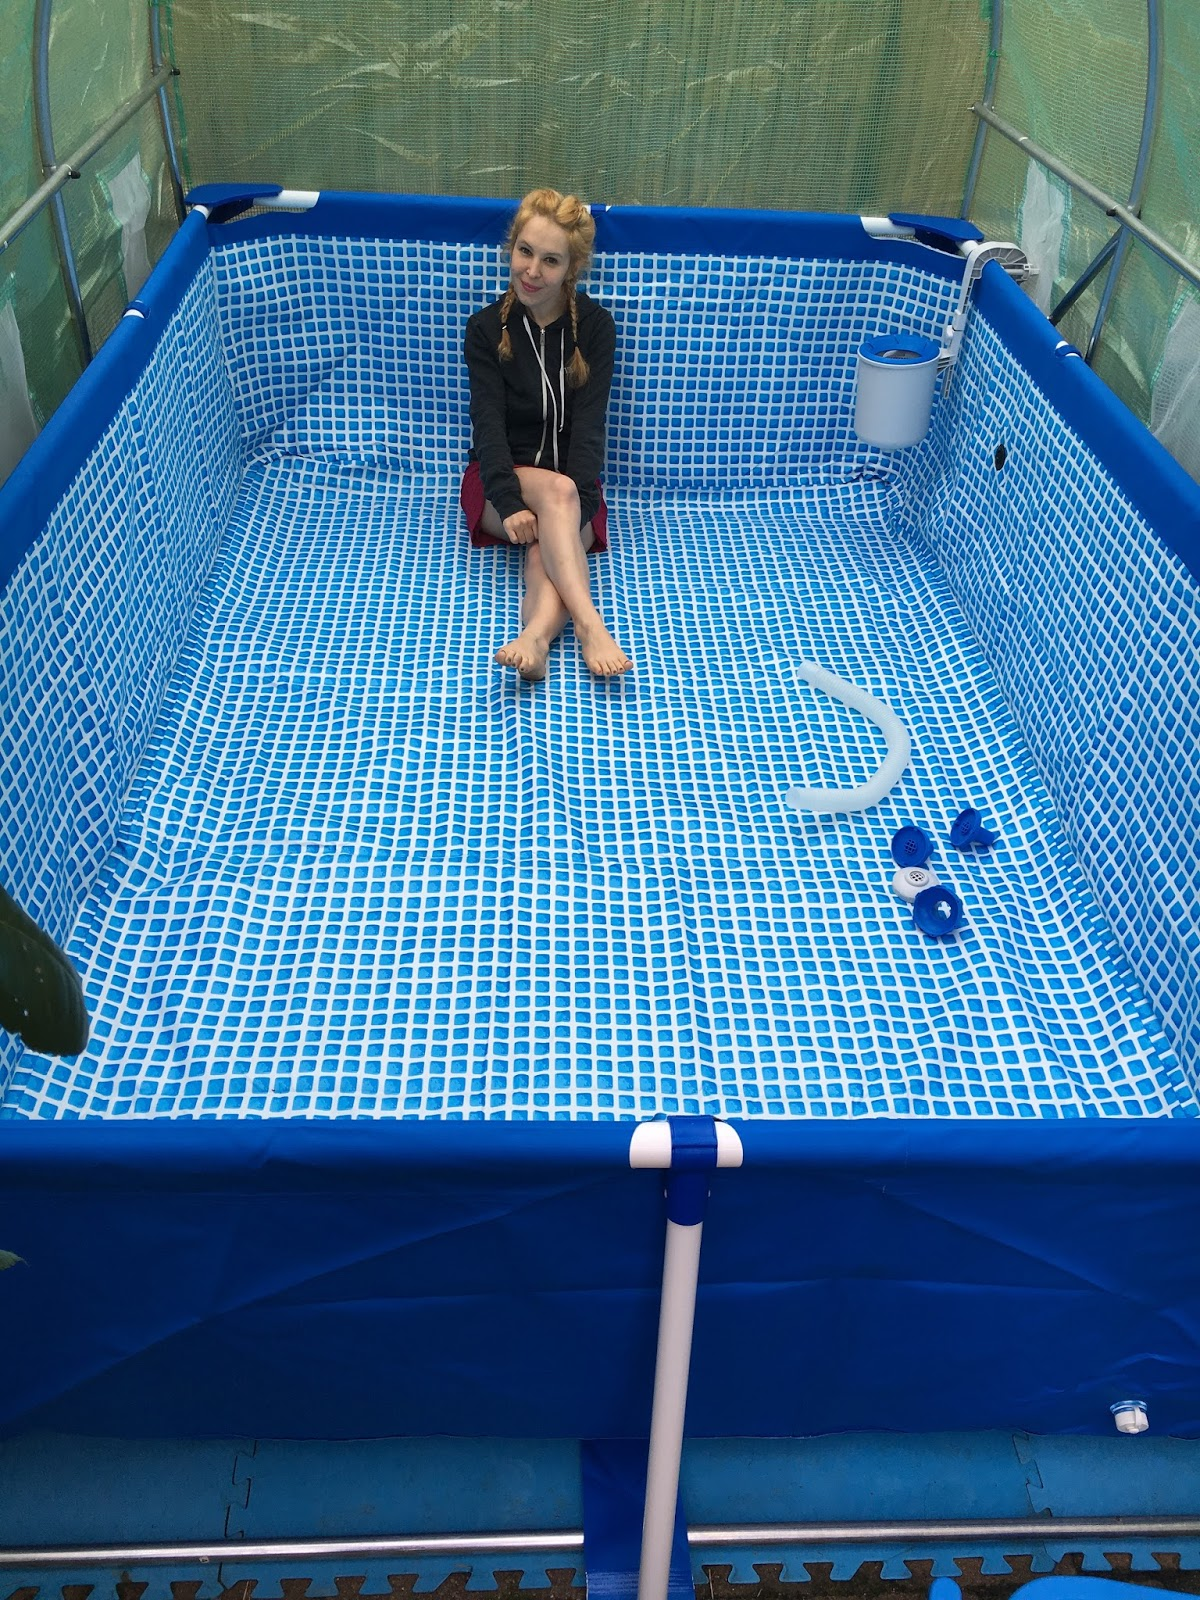 Ma piscine tubulaire chauff e gr ce une simple serre for Piscine 3 boudins intex